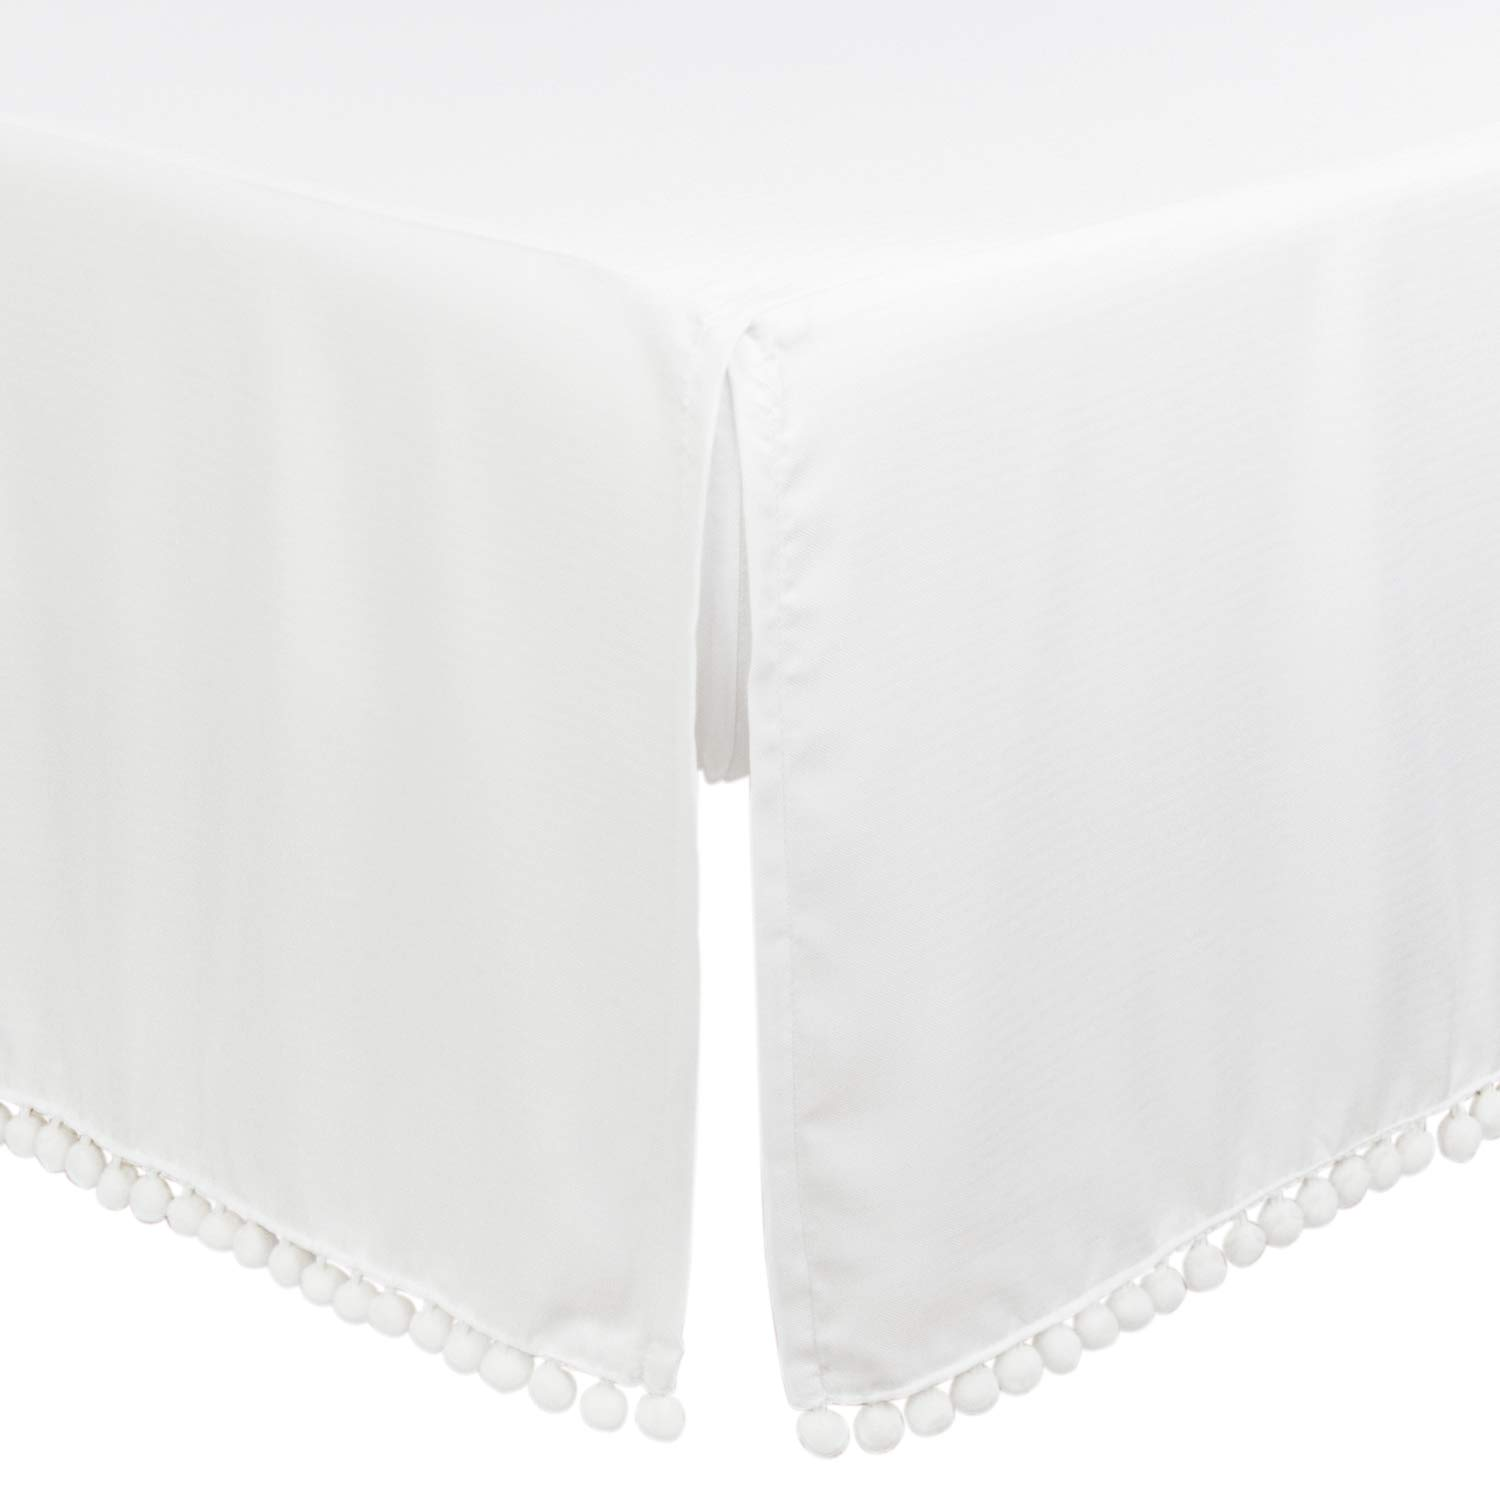 28 x 52in Fits Standard Crib /& Toddler Mattress 2 Pack White /& Navy Blue Breathable Cozy Hypoallergenic Baby Sheets For Boys and Girls TILLYOU Silky Soft Microfiber Crib Sheet Set